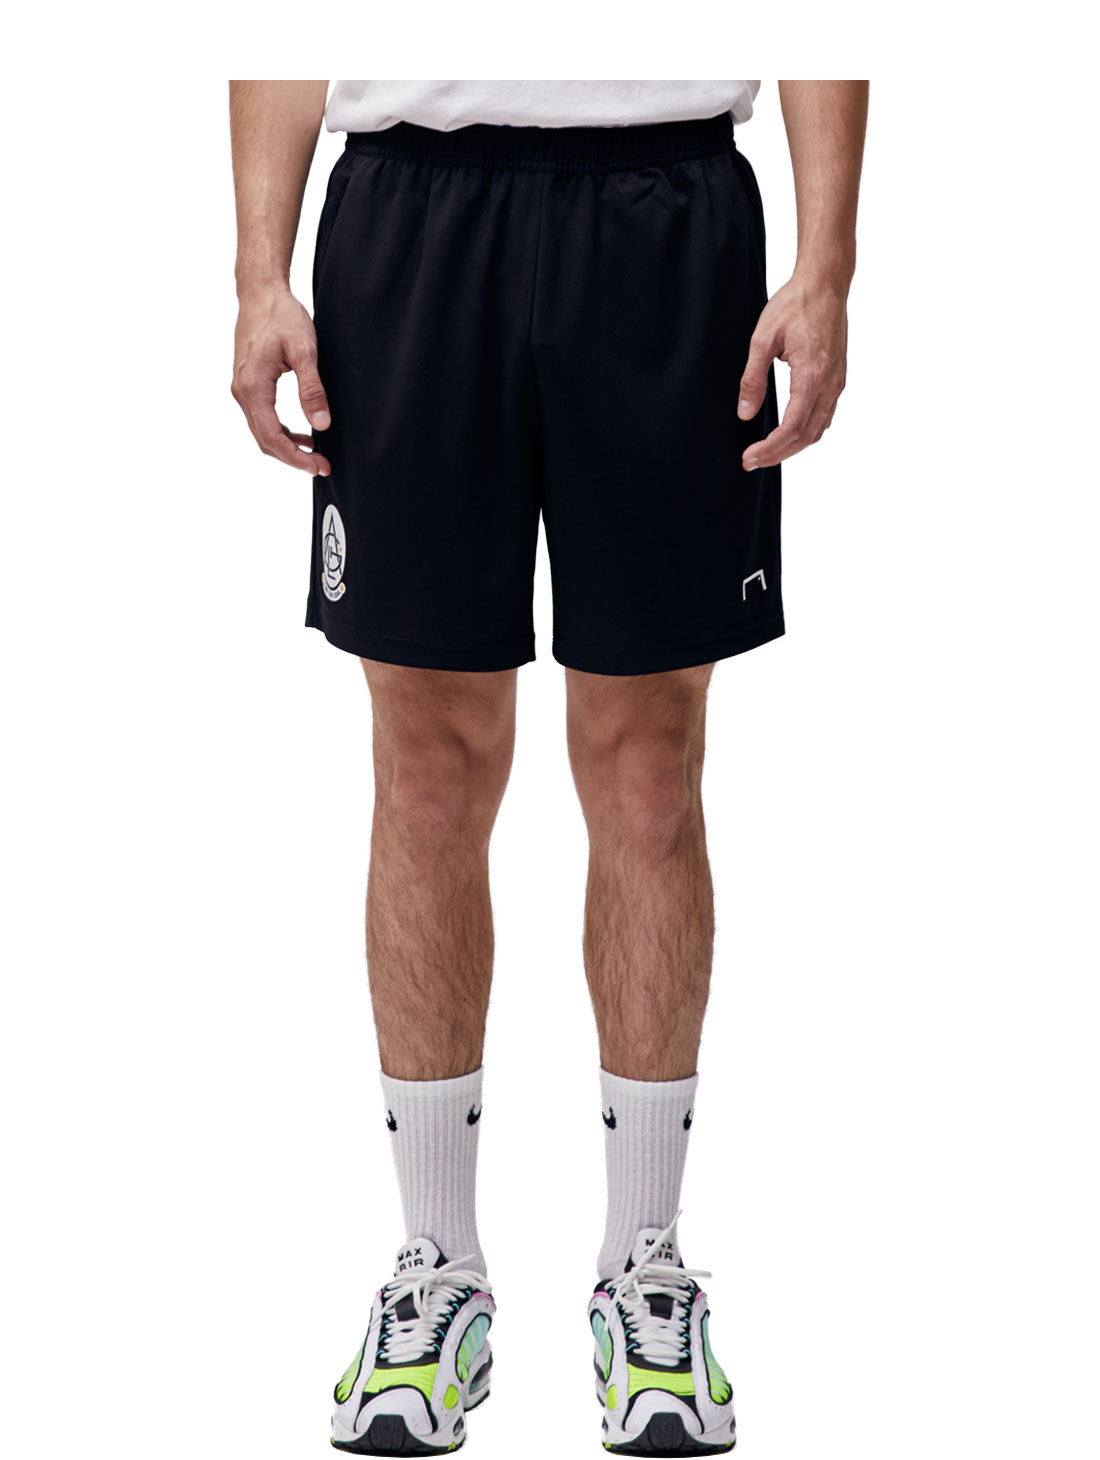 PLAYER EMBLEM SHORTS - BLACK